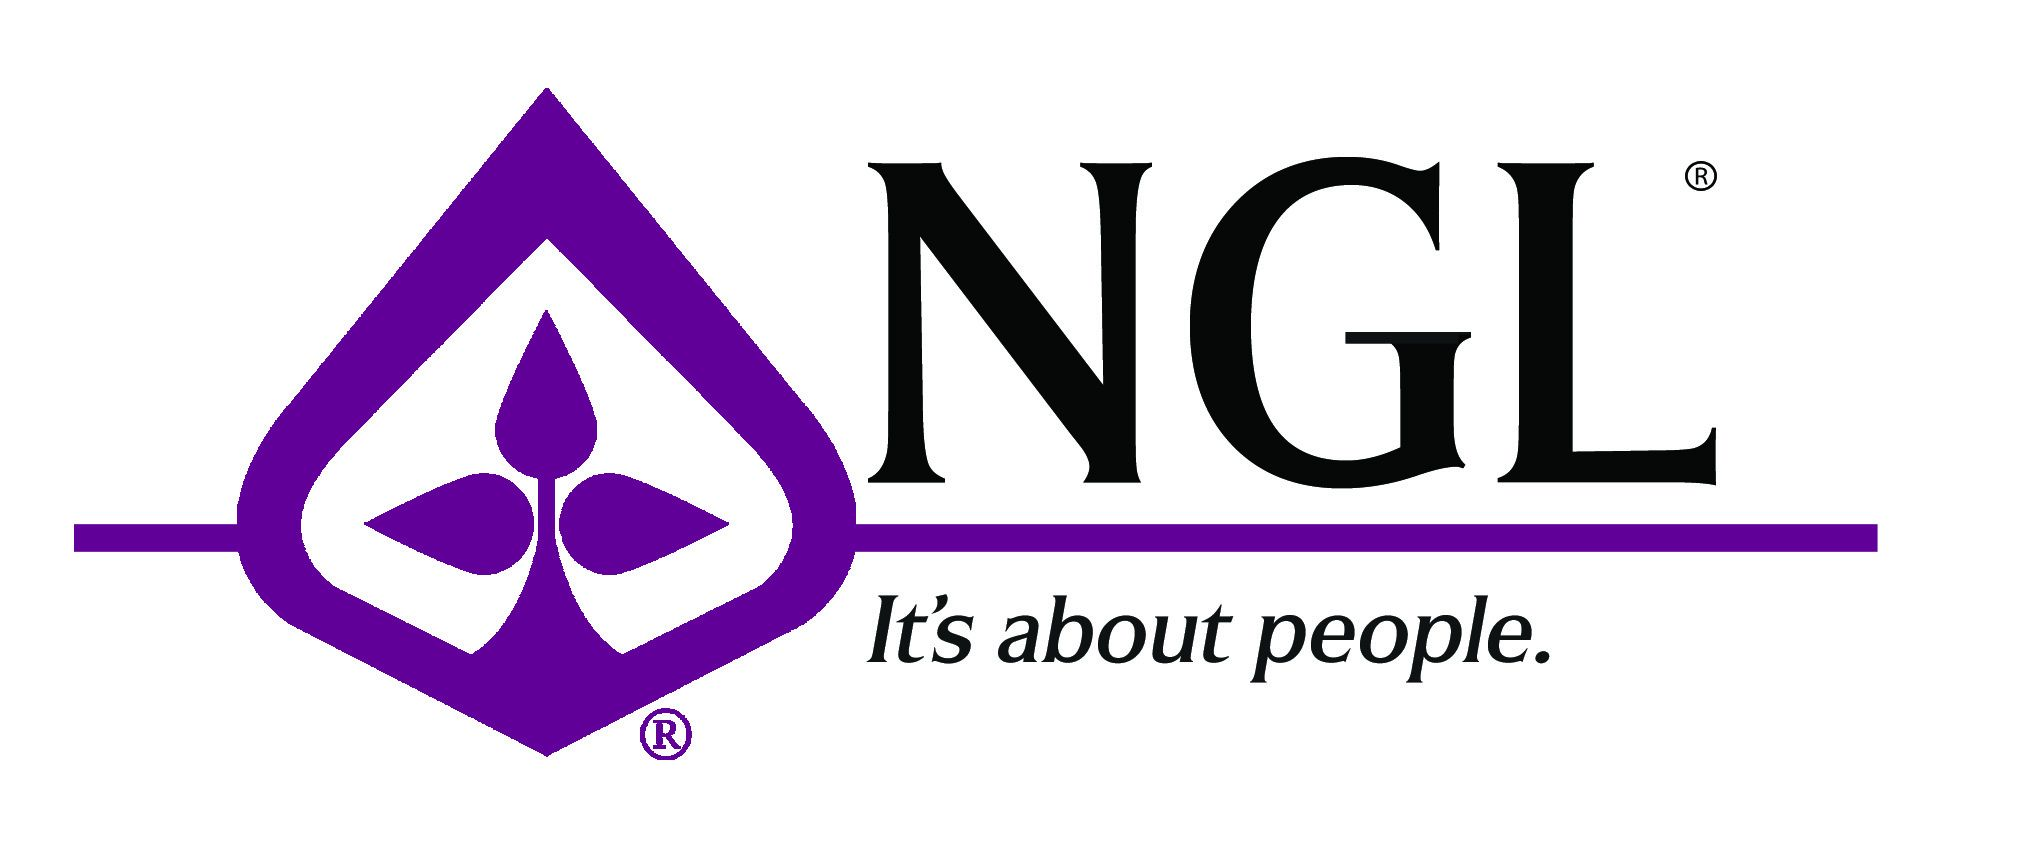 nationalguardianlife Logo